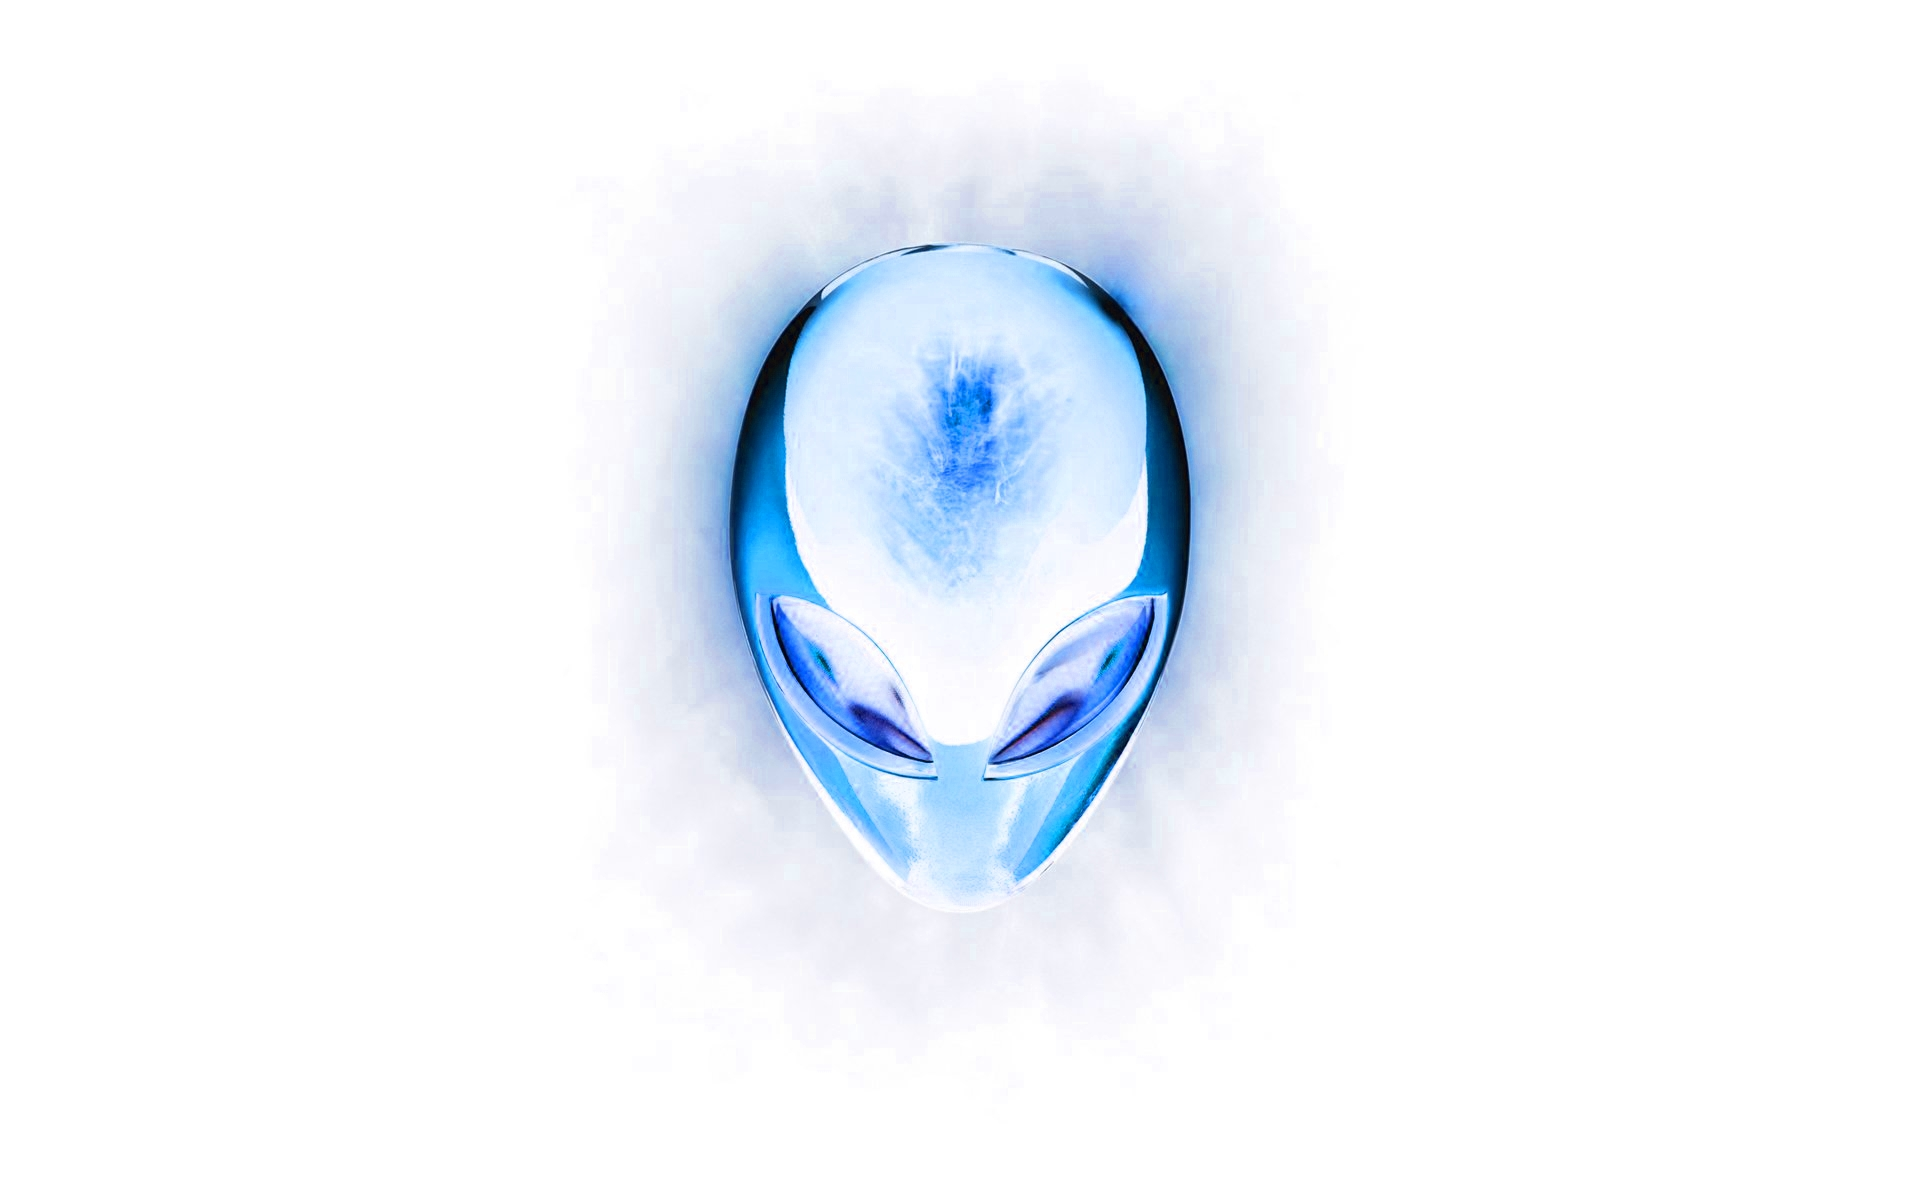 Alienware-Desktop-Background-White-And-Blue-Alien-Head-1920x1200